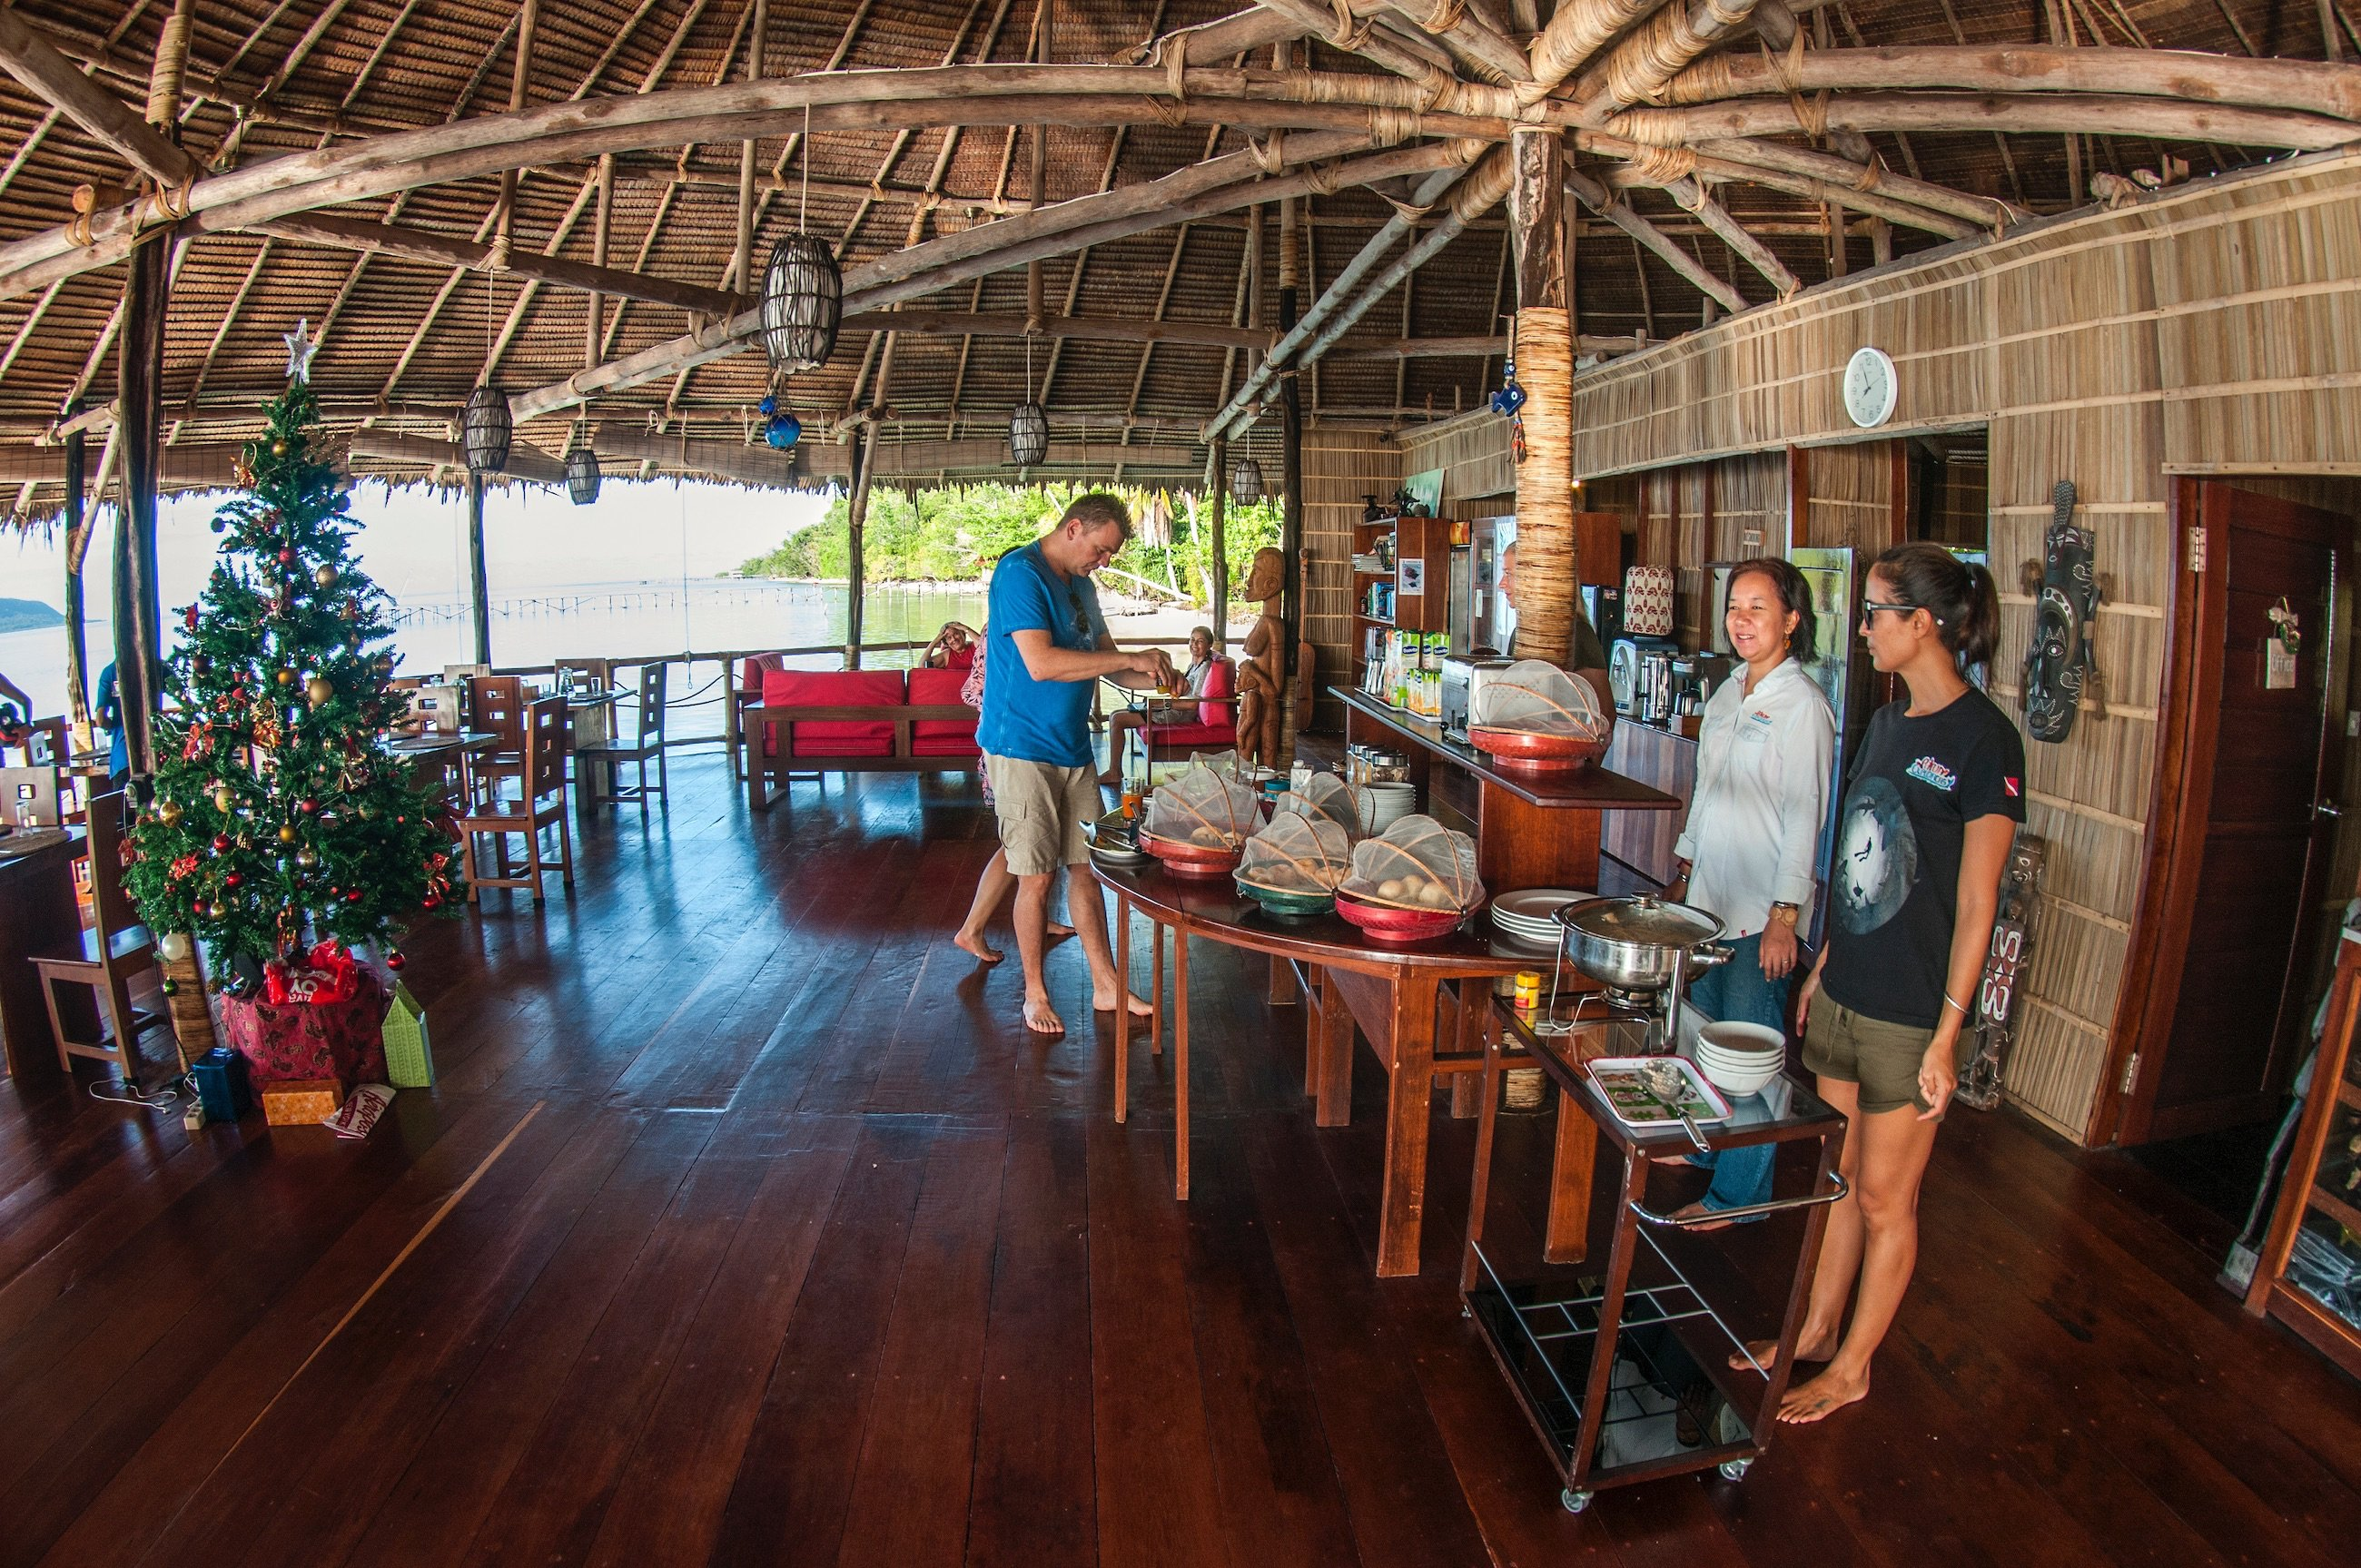 (English) guests enjoying the breakfast buffet overseen by our attentive staff in our restaurant built over the waters of Raja Ampat with a christmas tree